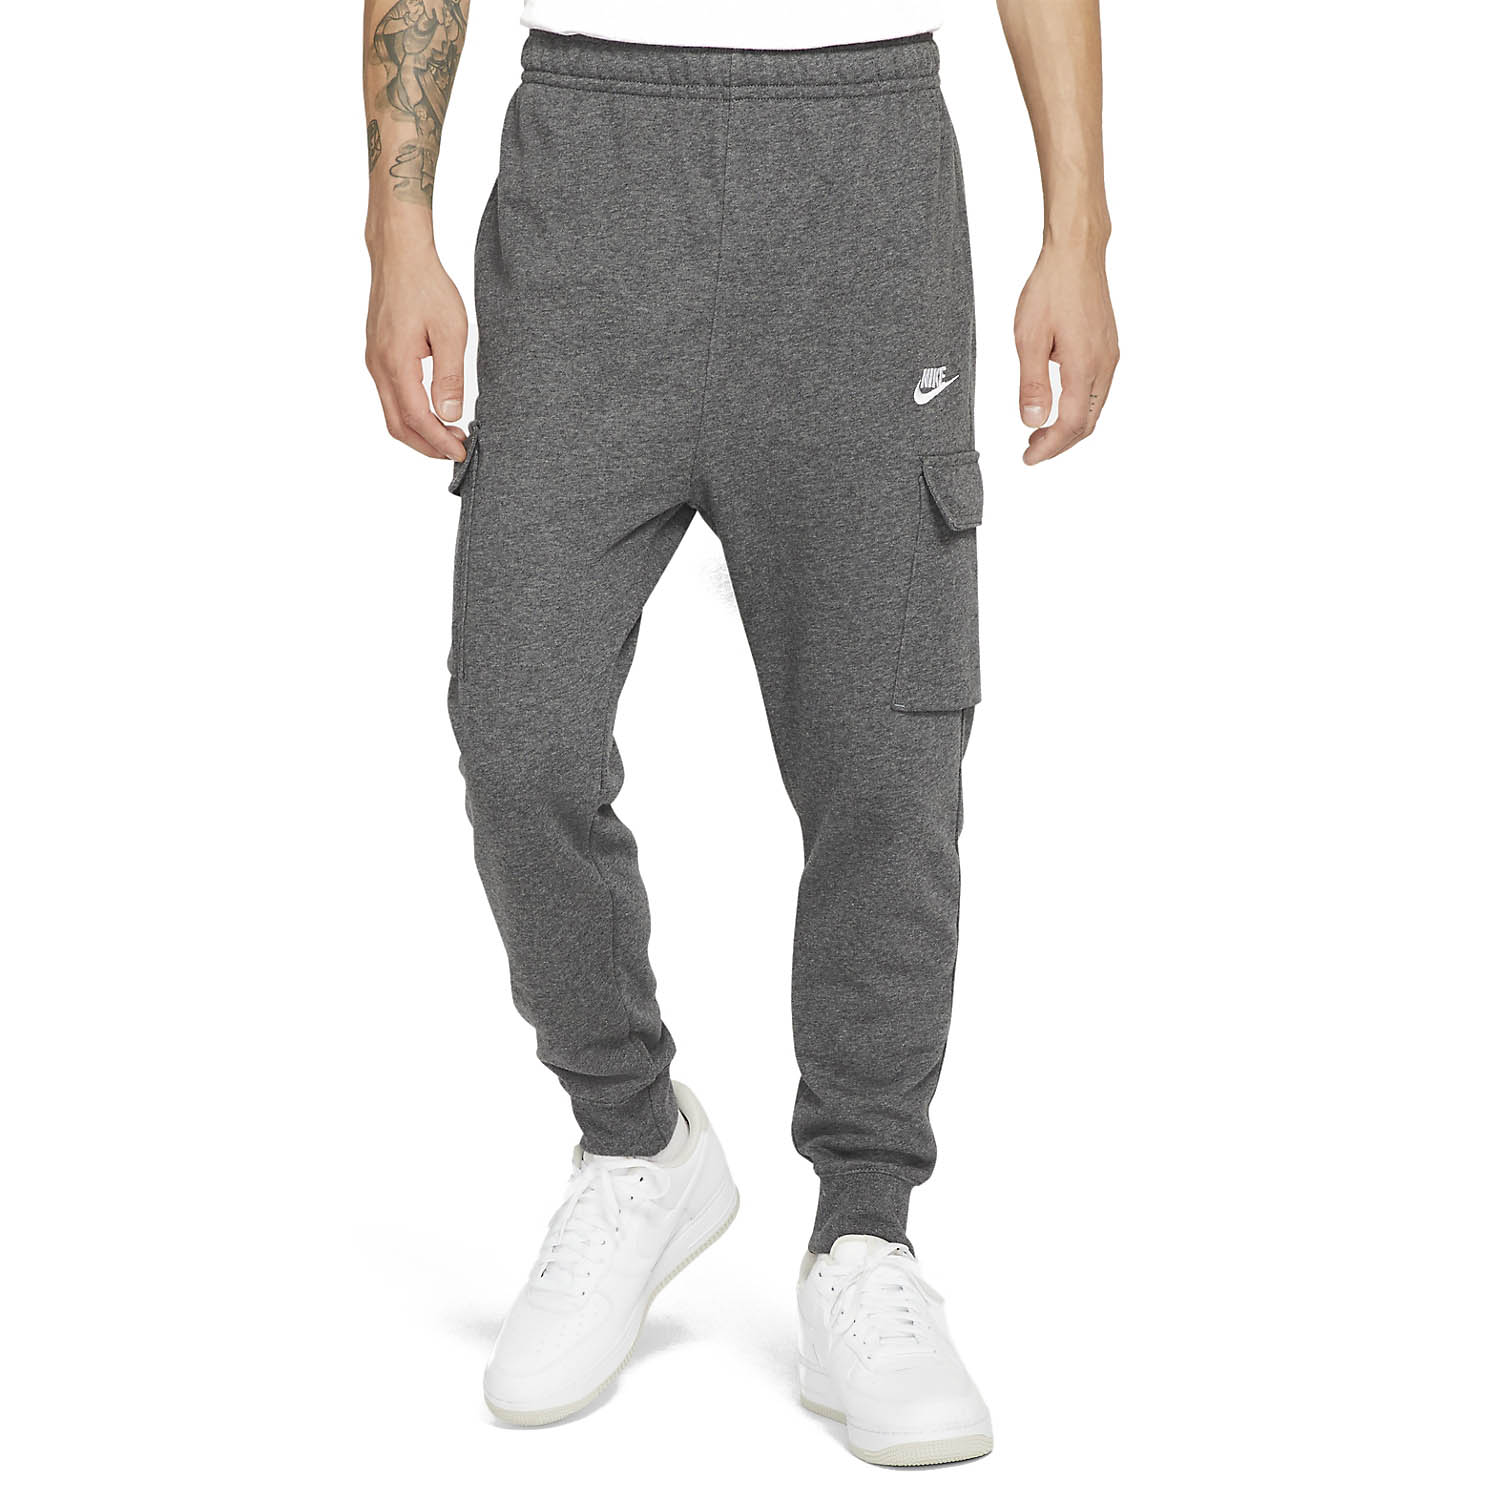 NIKE Брюки мужские SPORTSWEAR CLUB FLEECE, grey2 CZ9954-071